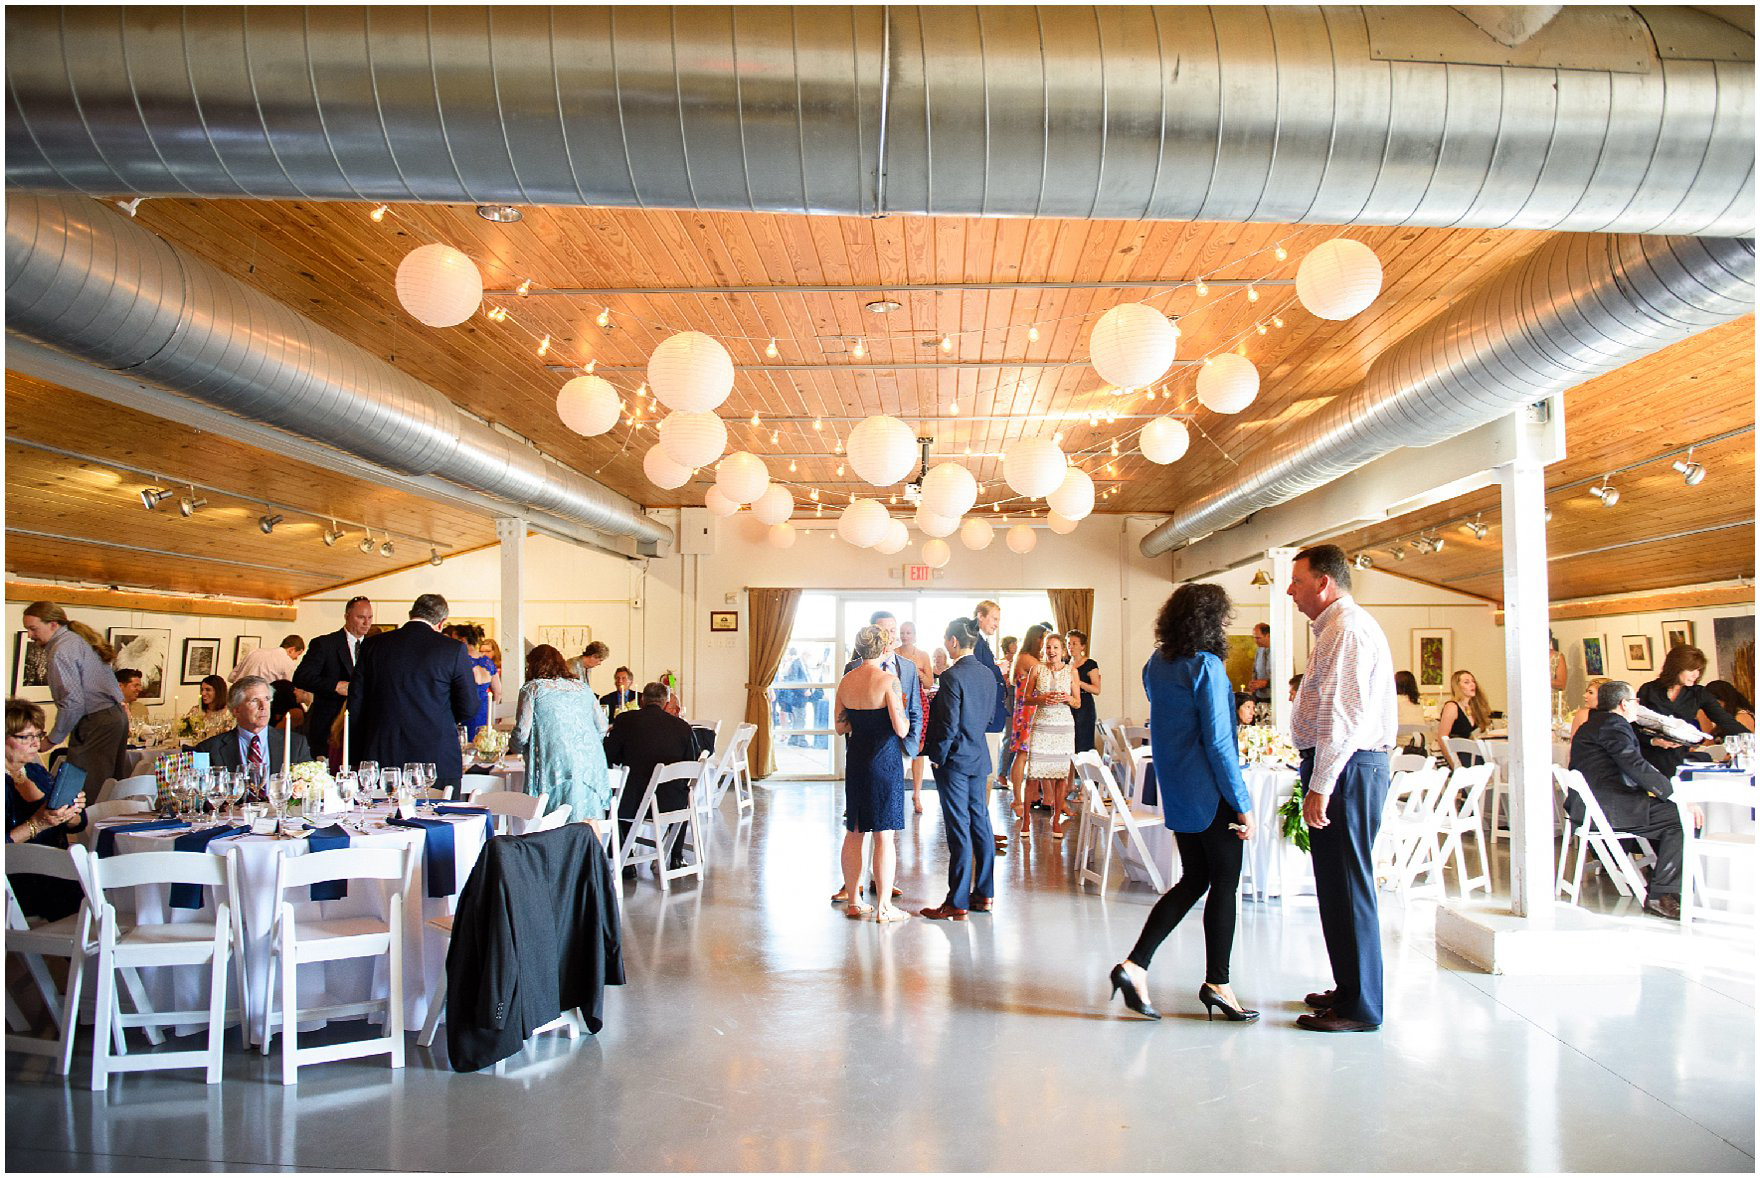 Guests At Reception For Nautical Waterfront Wedding Invitation Maritime Museum